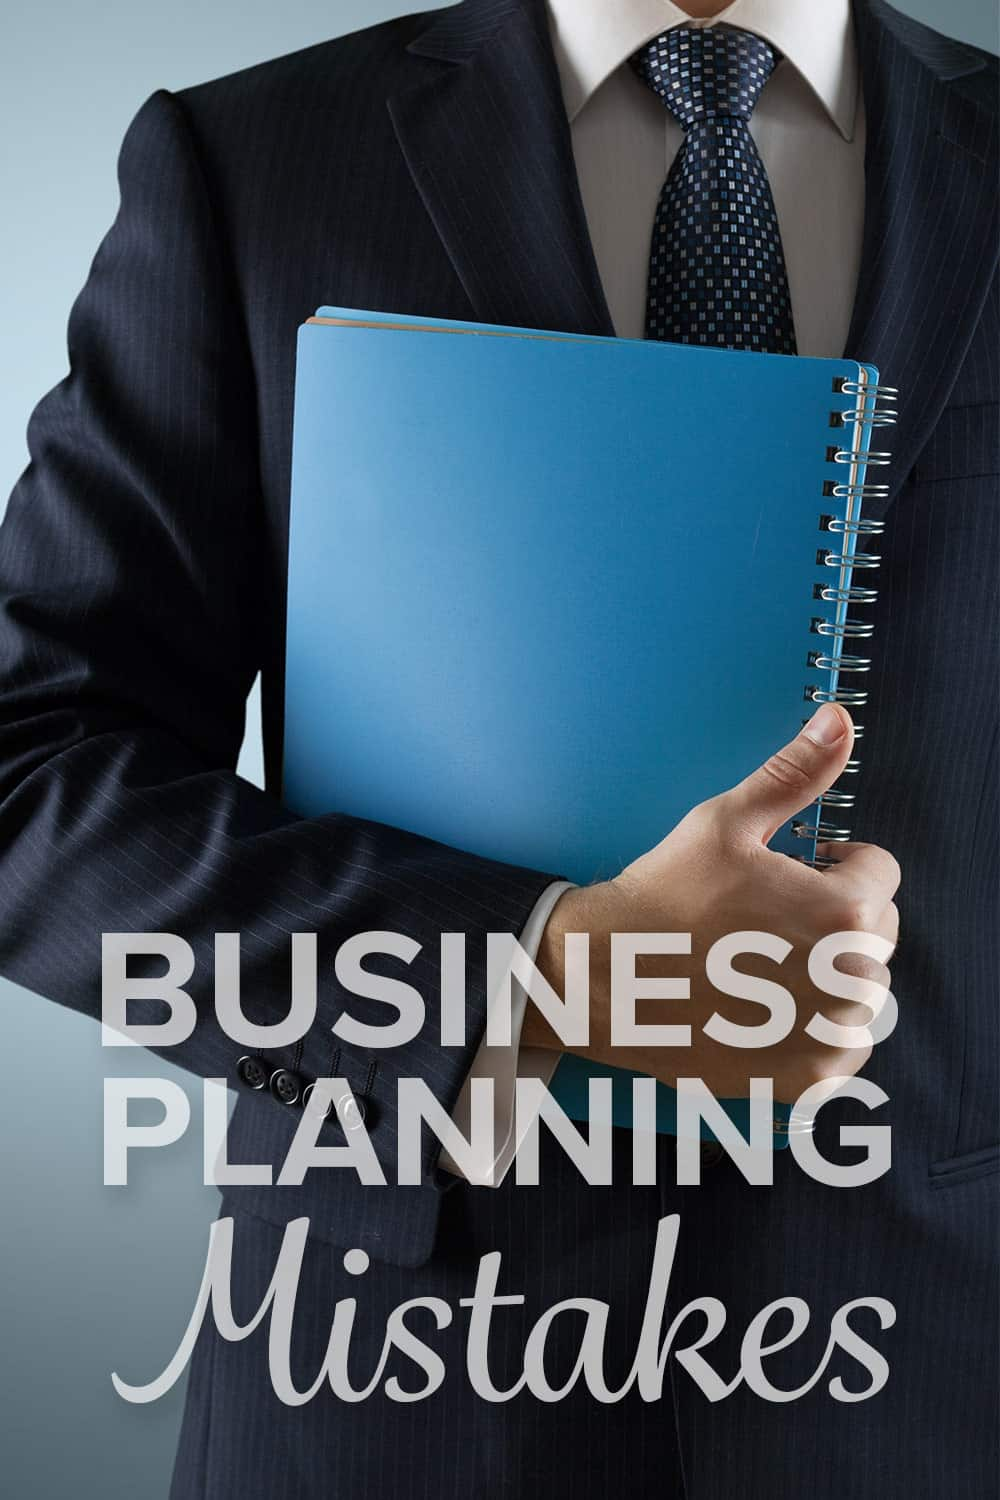 Business Planning Mistakes: 7 Common Mistakes to Avoid